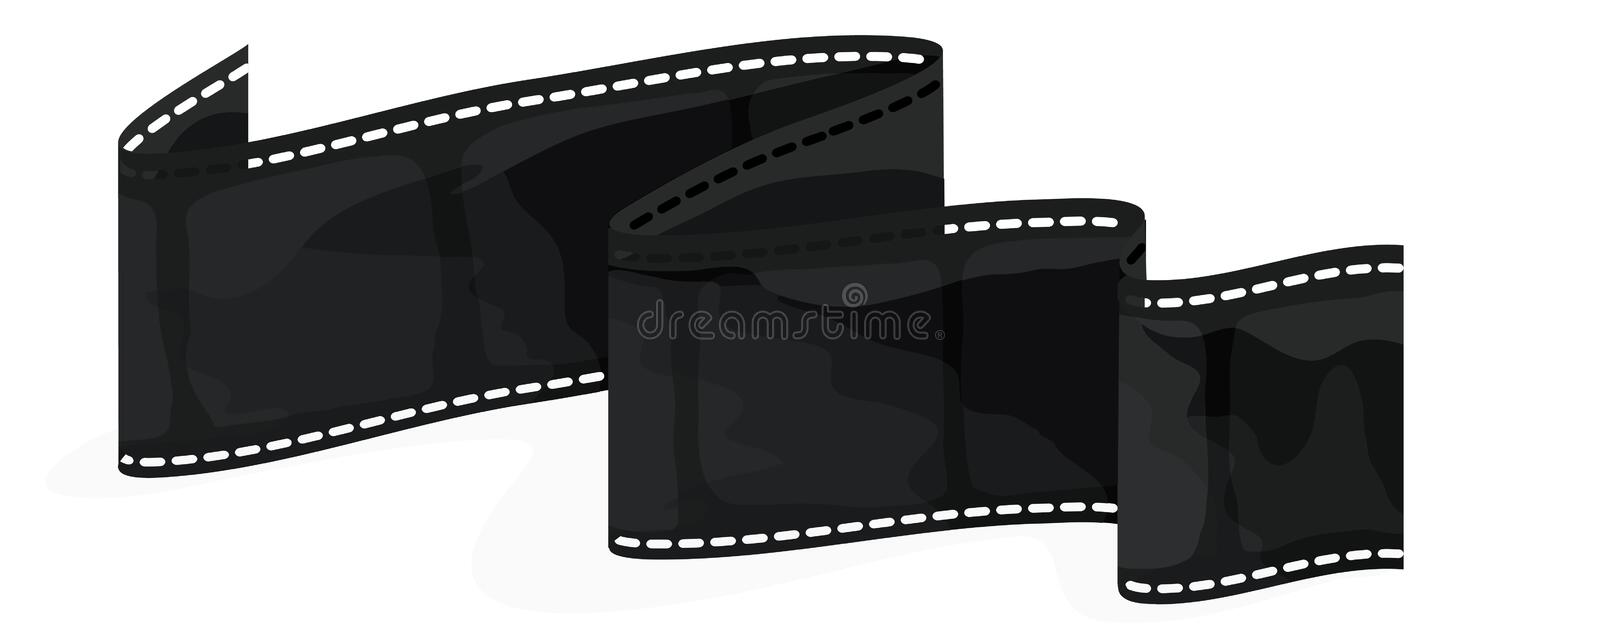 Film Strip with clipping path. Illustration with clipping path vector illustration